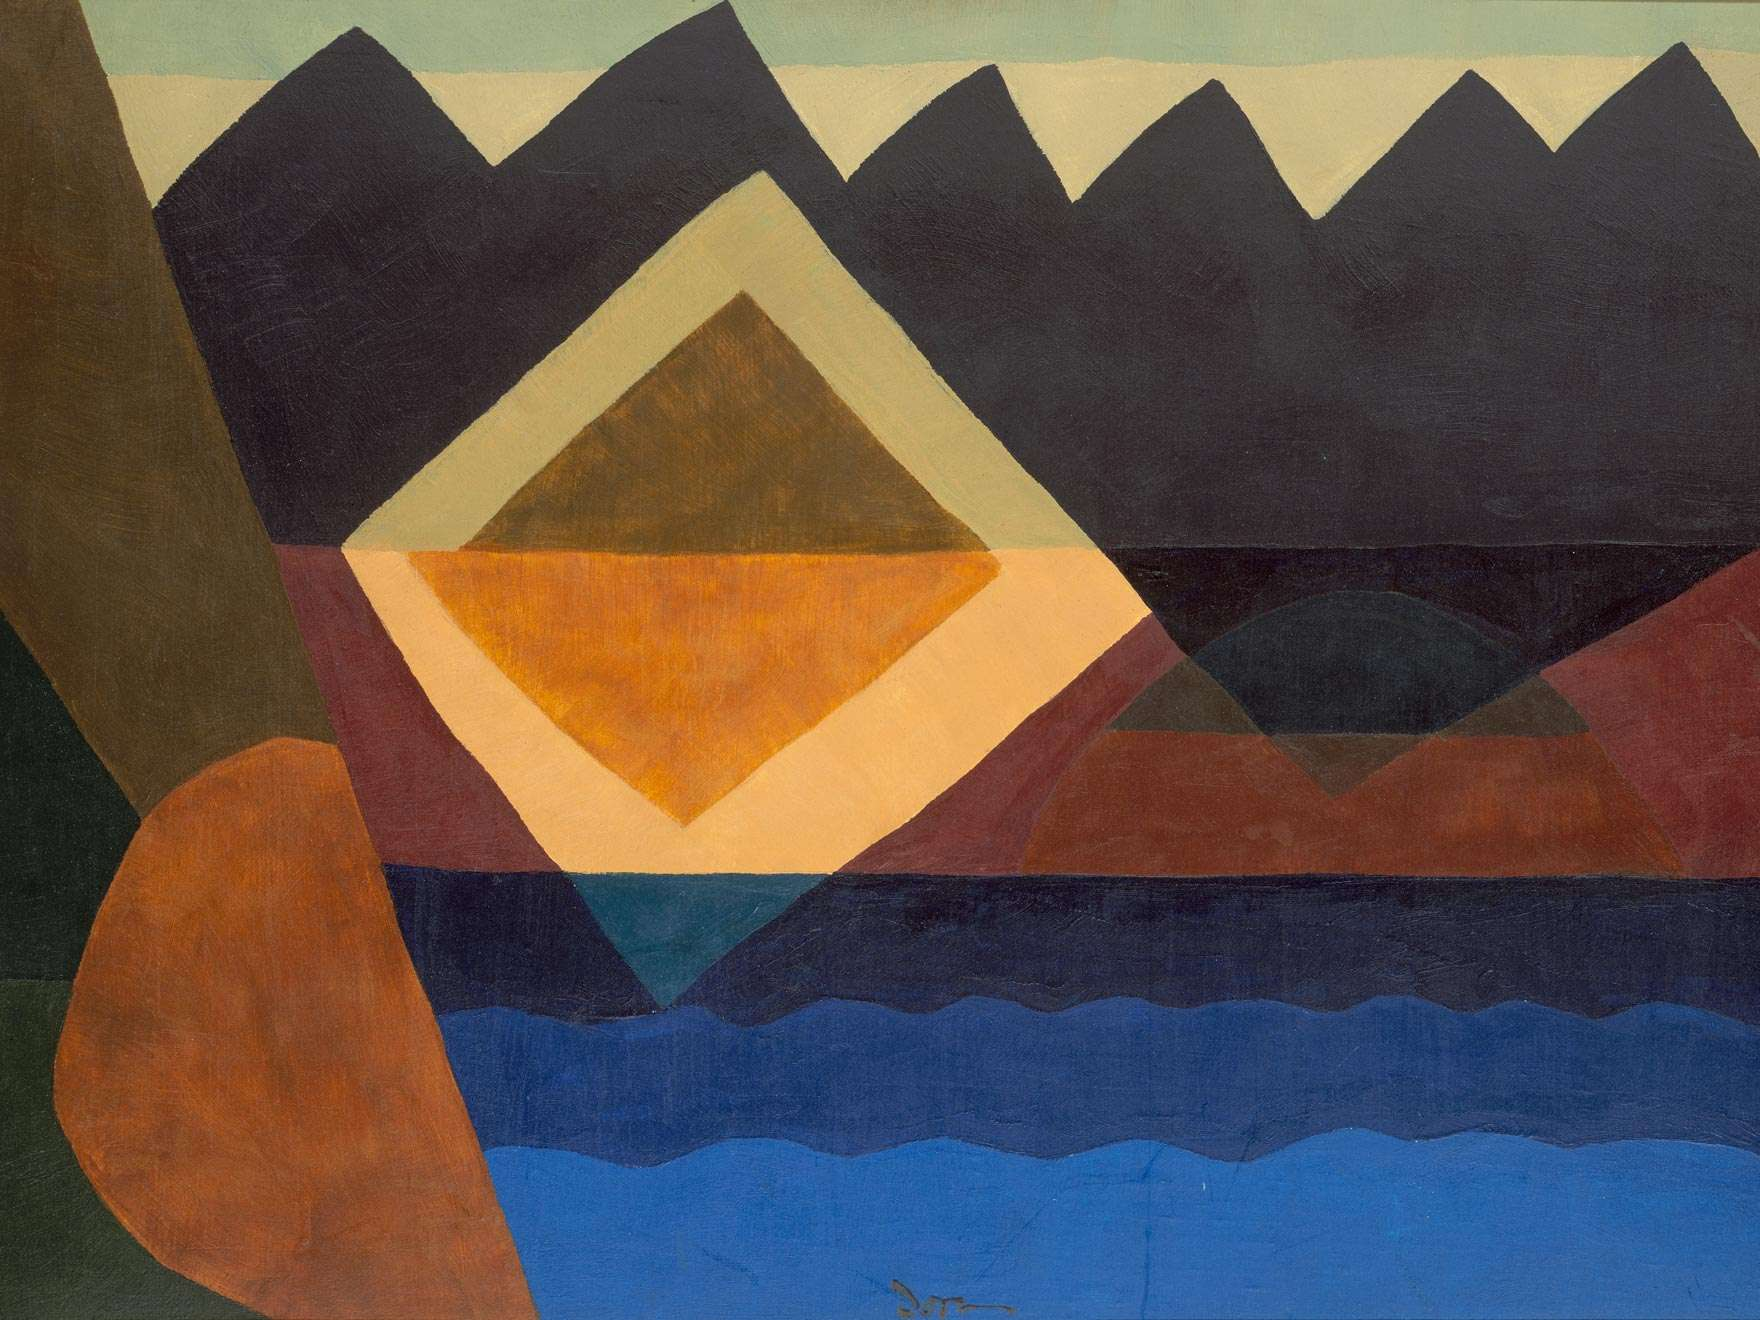 Arthur Garfield Dove's painting, Square on the Pond